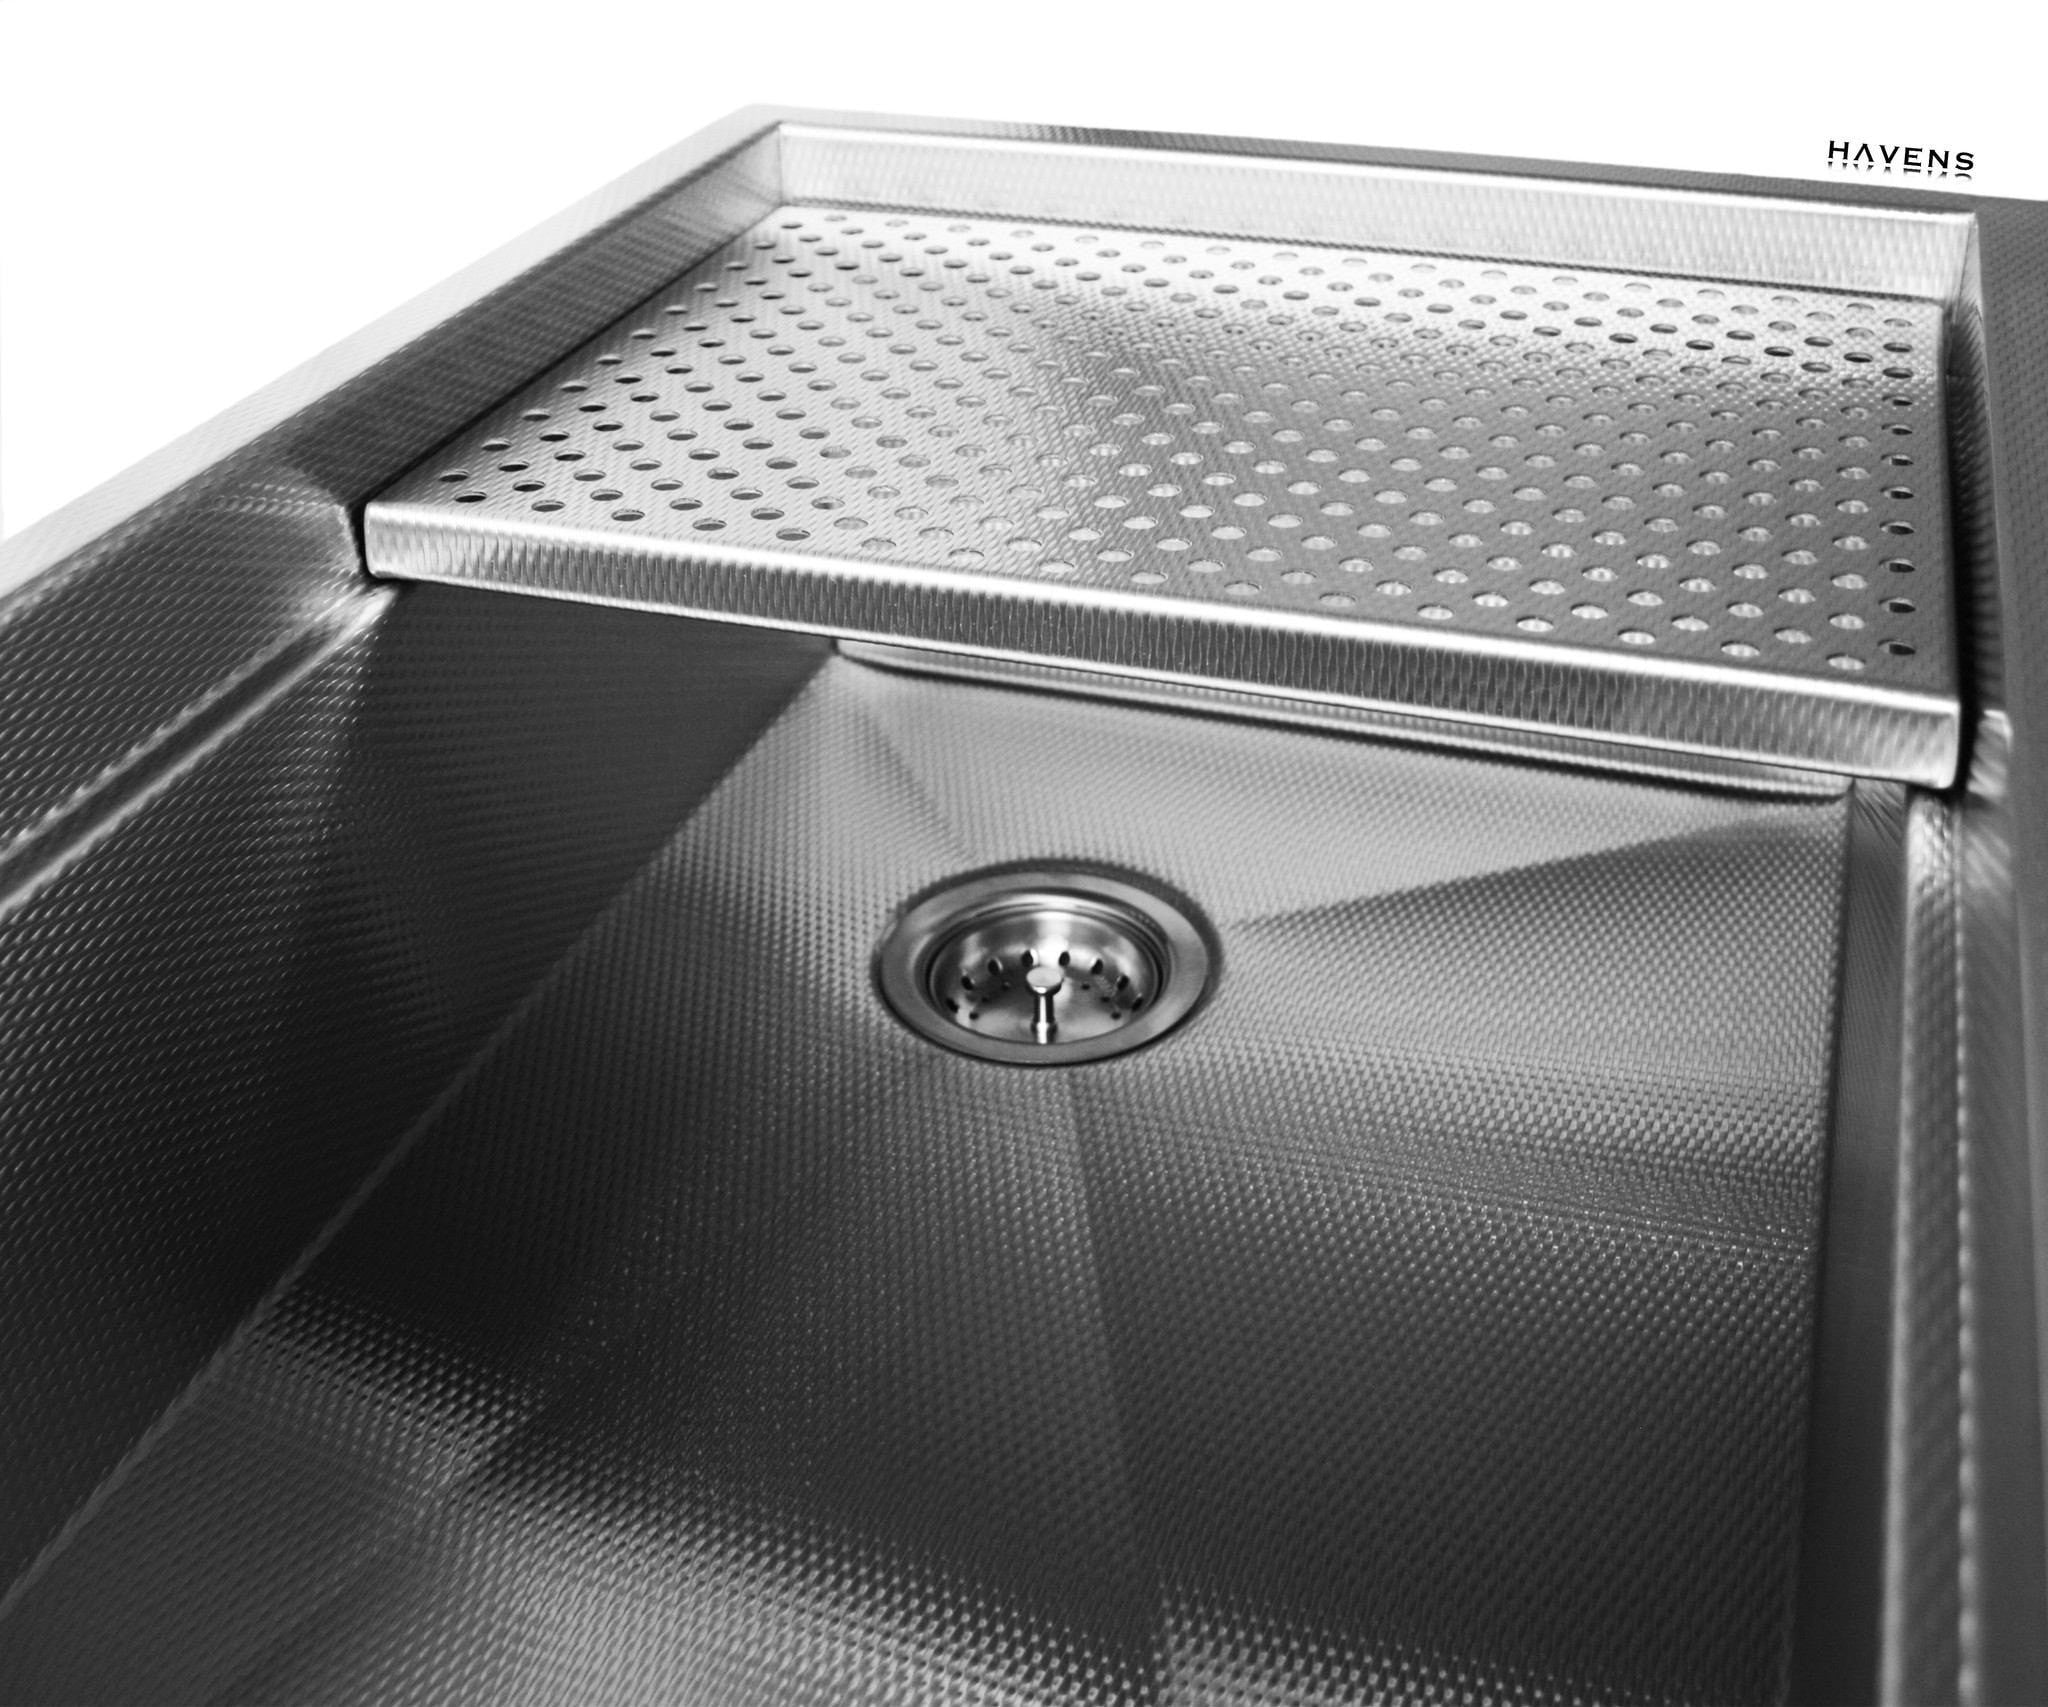 Stainless steel Legacy sink